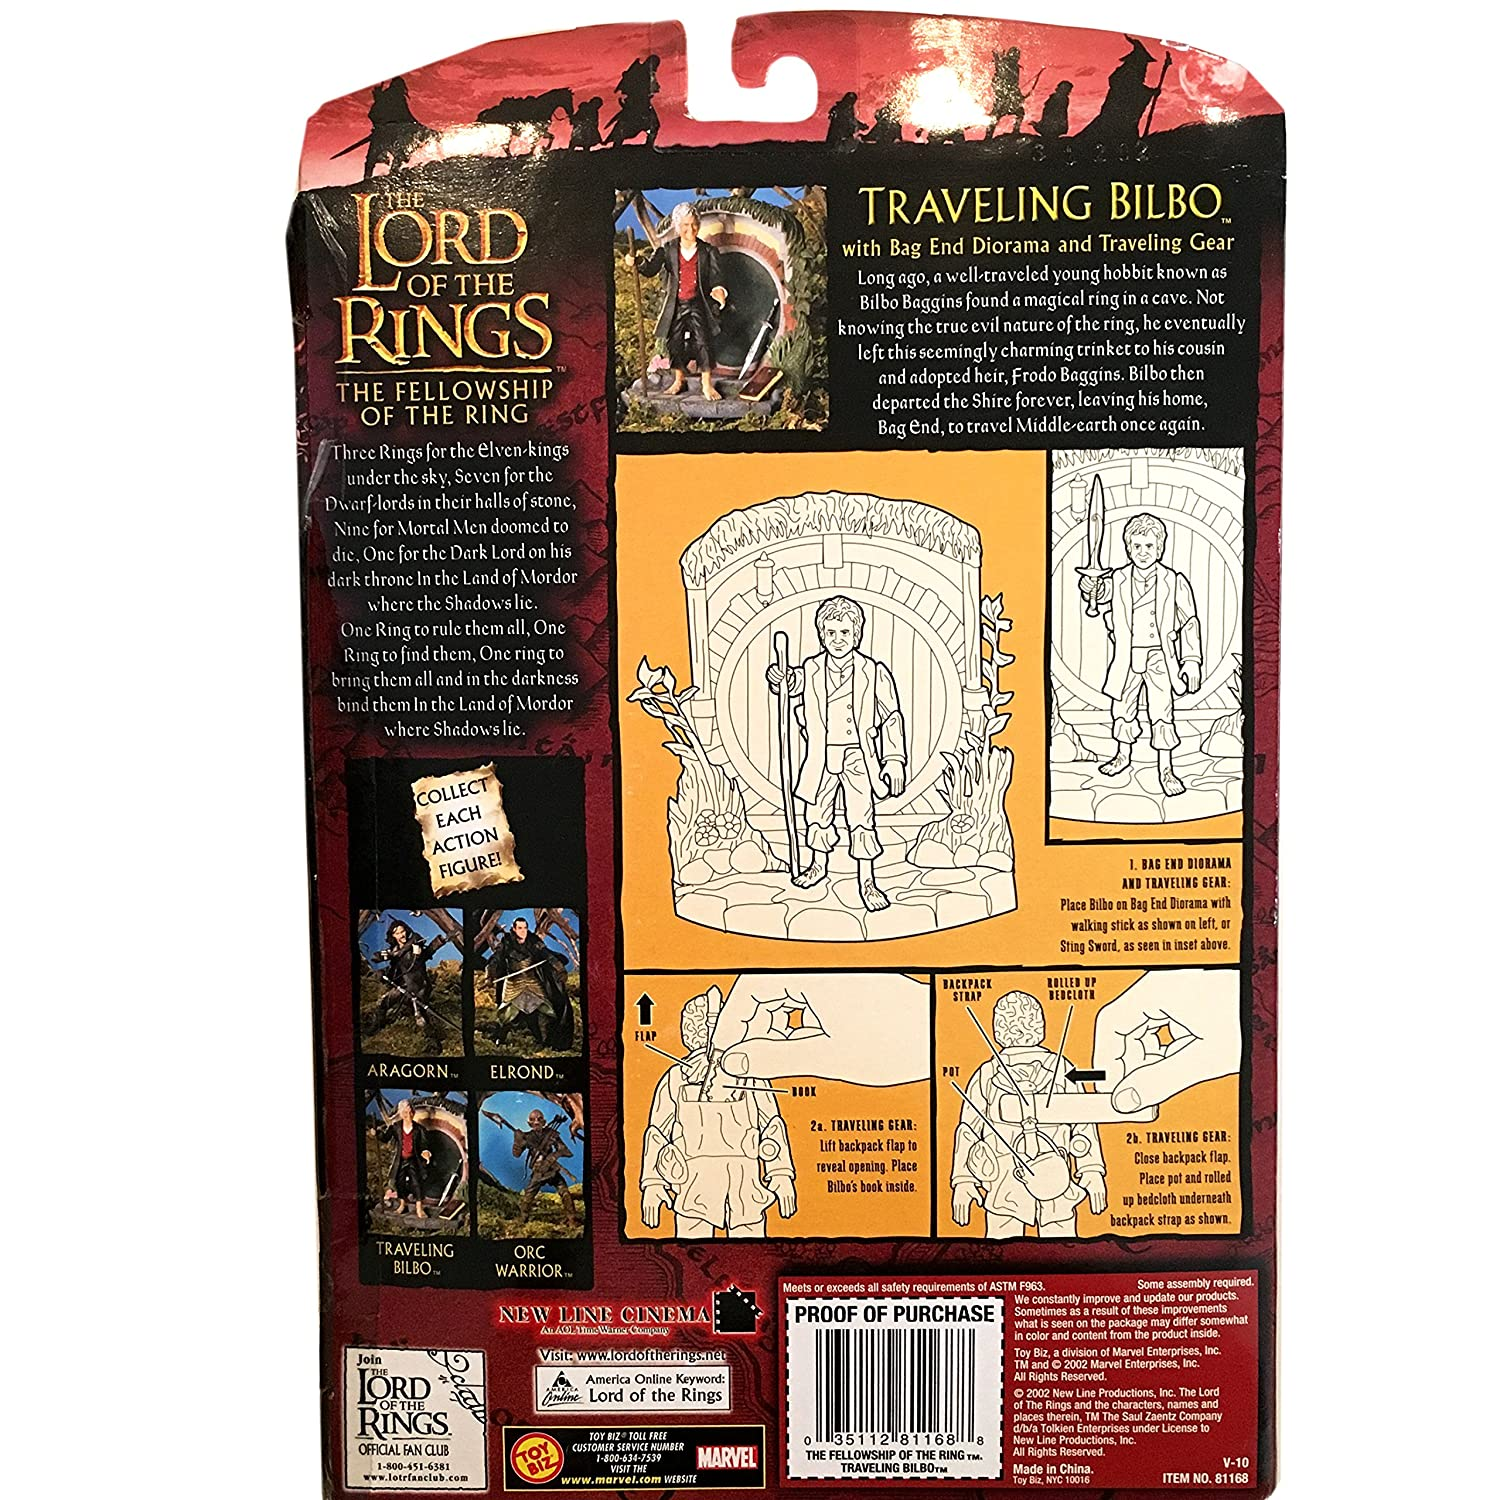 2003 TOY BIZ LORD OF THE RINGS THE TWO TOWERS WAVE 2 TRAVELING BILBO FIGURE HALF MOON PACKAGE SG/_B000VI3DJQ/_US